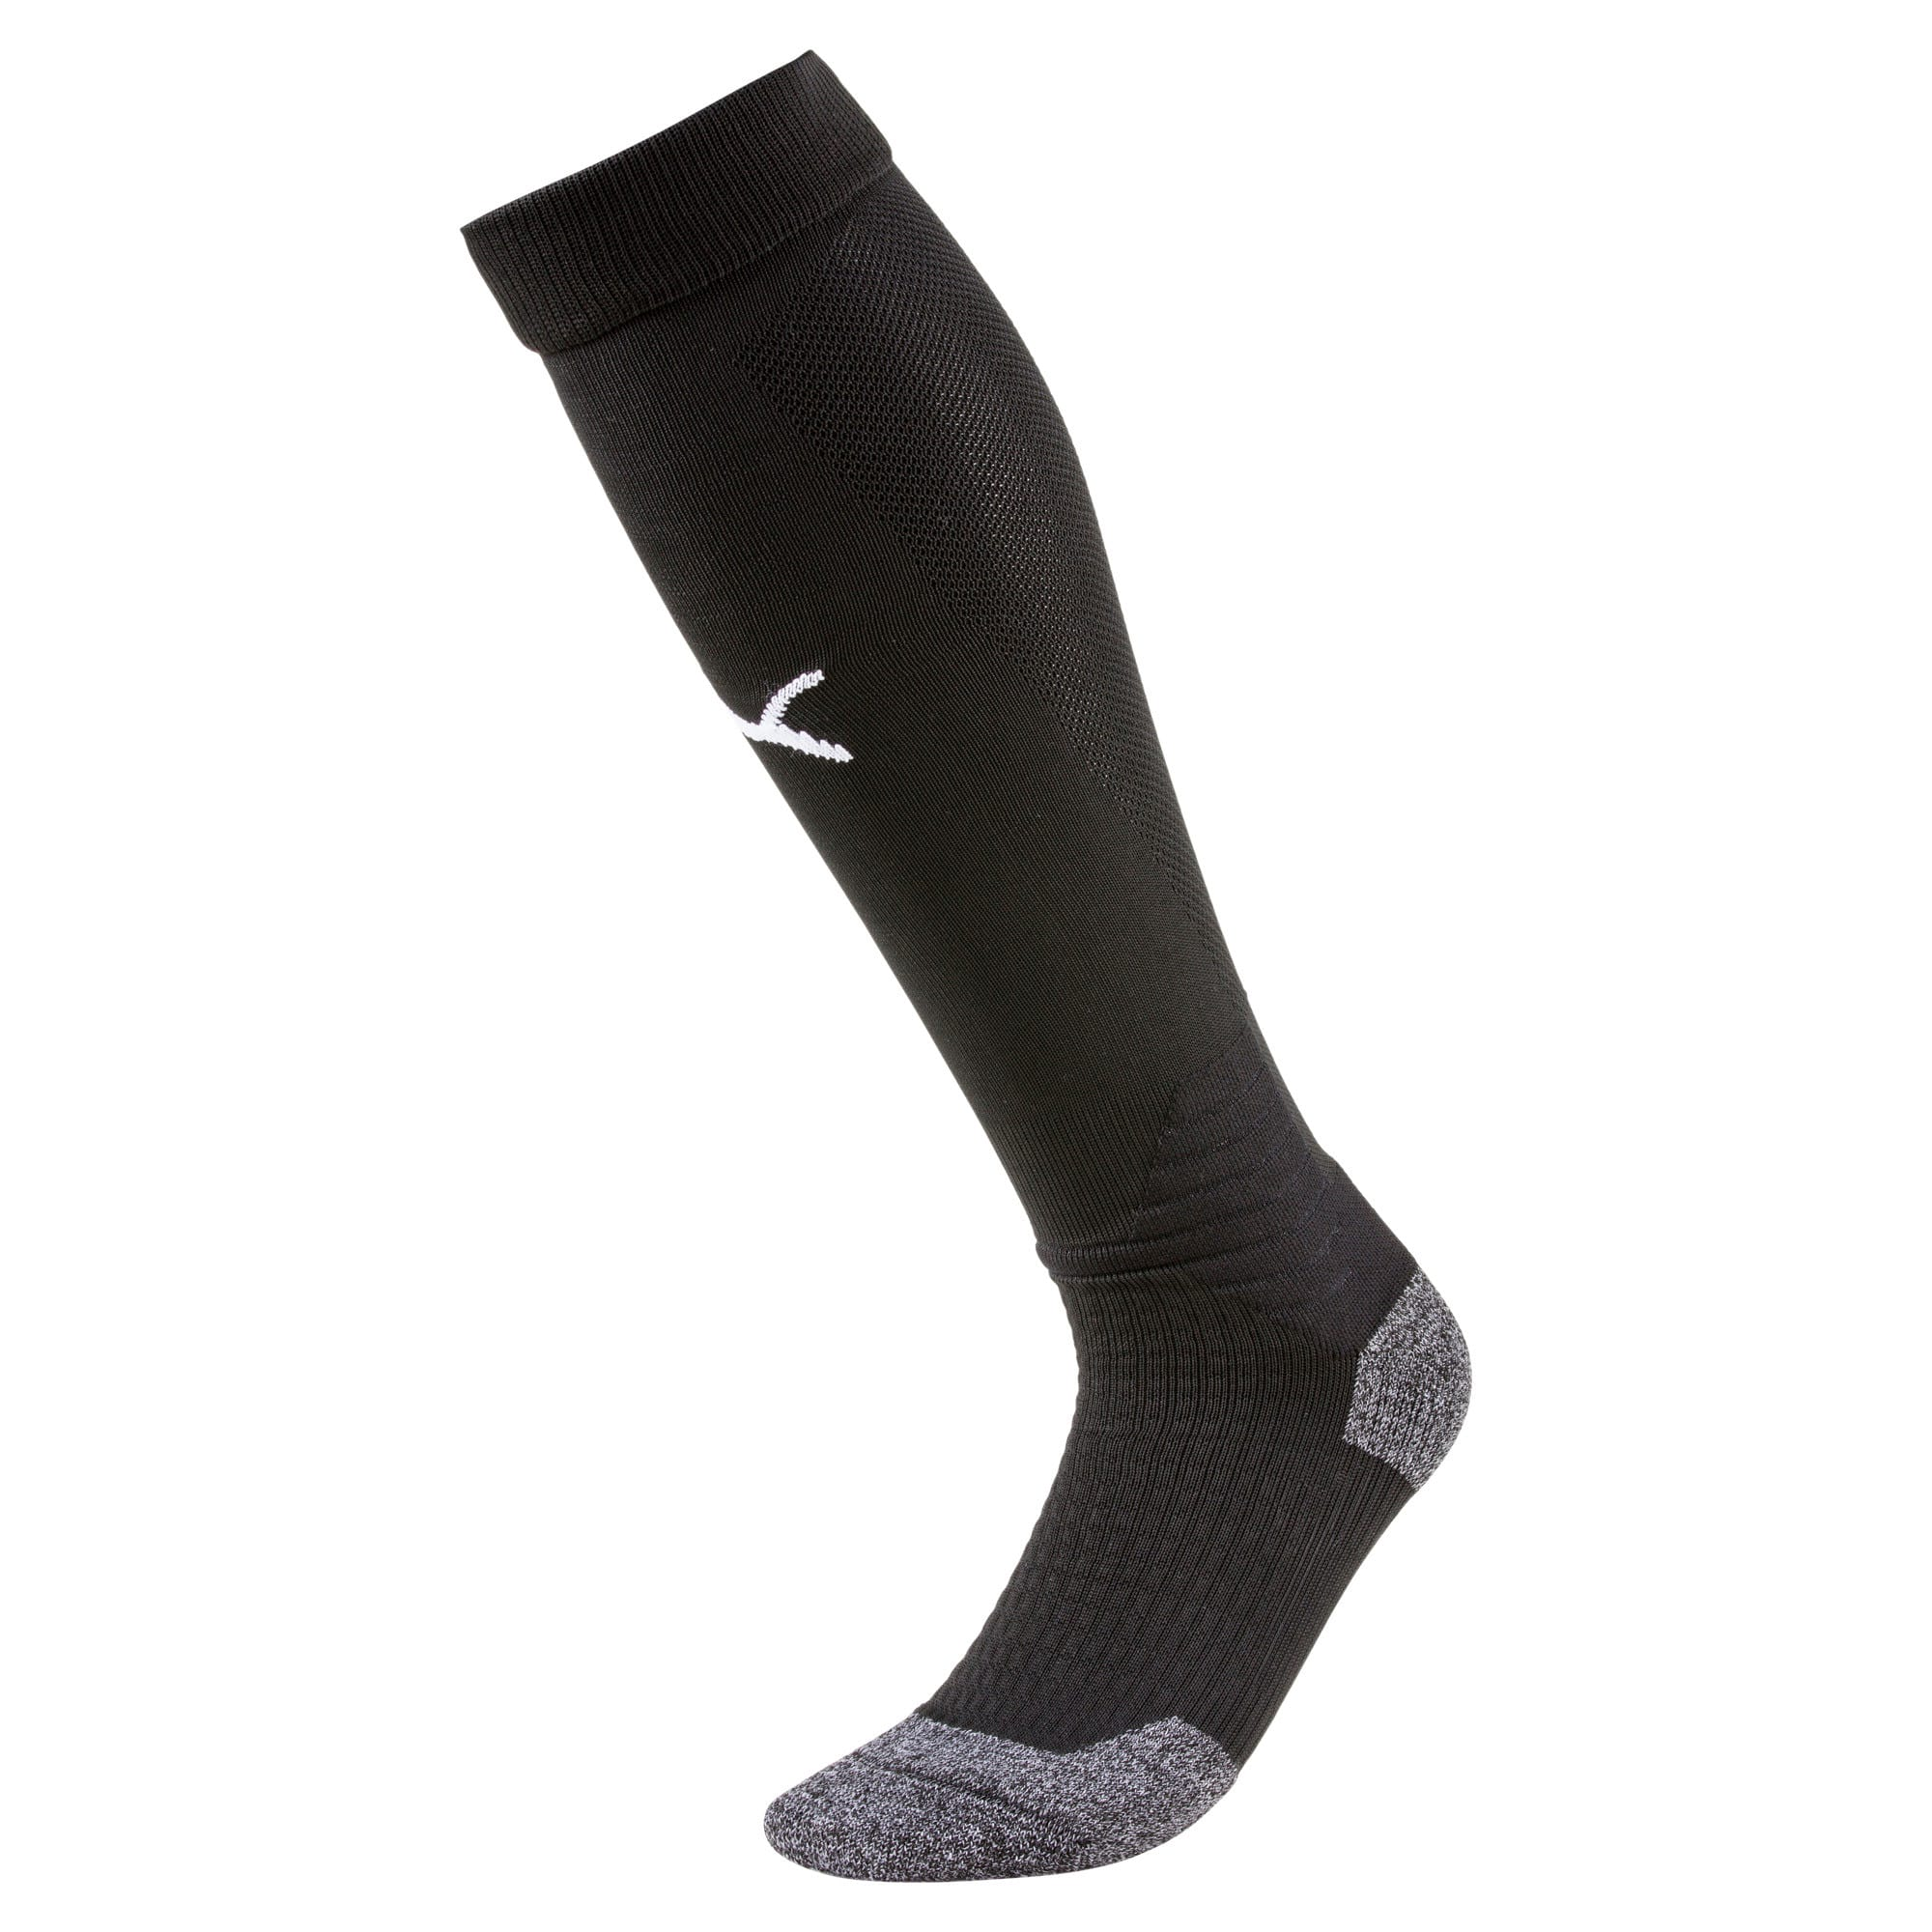 Thumbnail 1 of Liga Soccer Socks [1 Pair], Puma Black-Puma White, medium